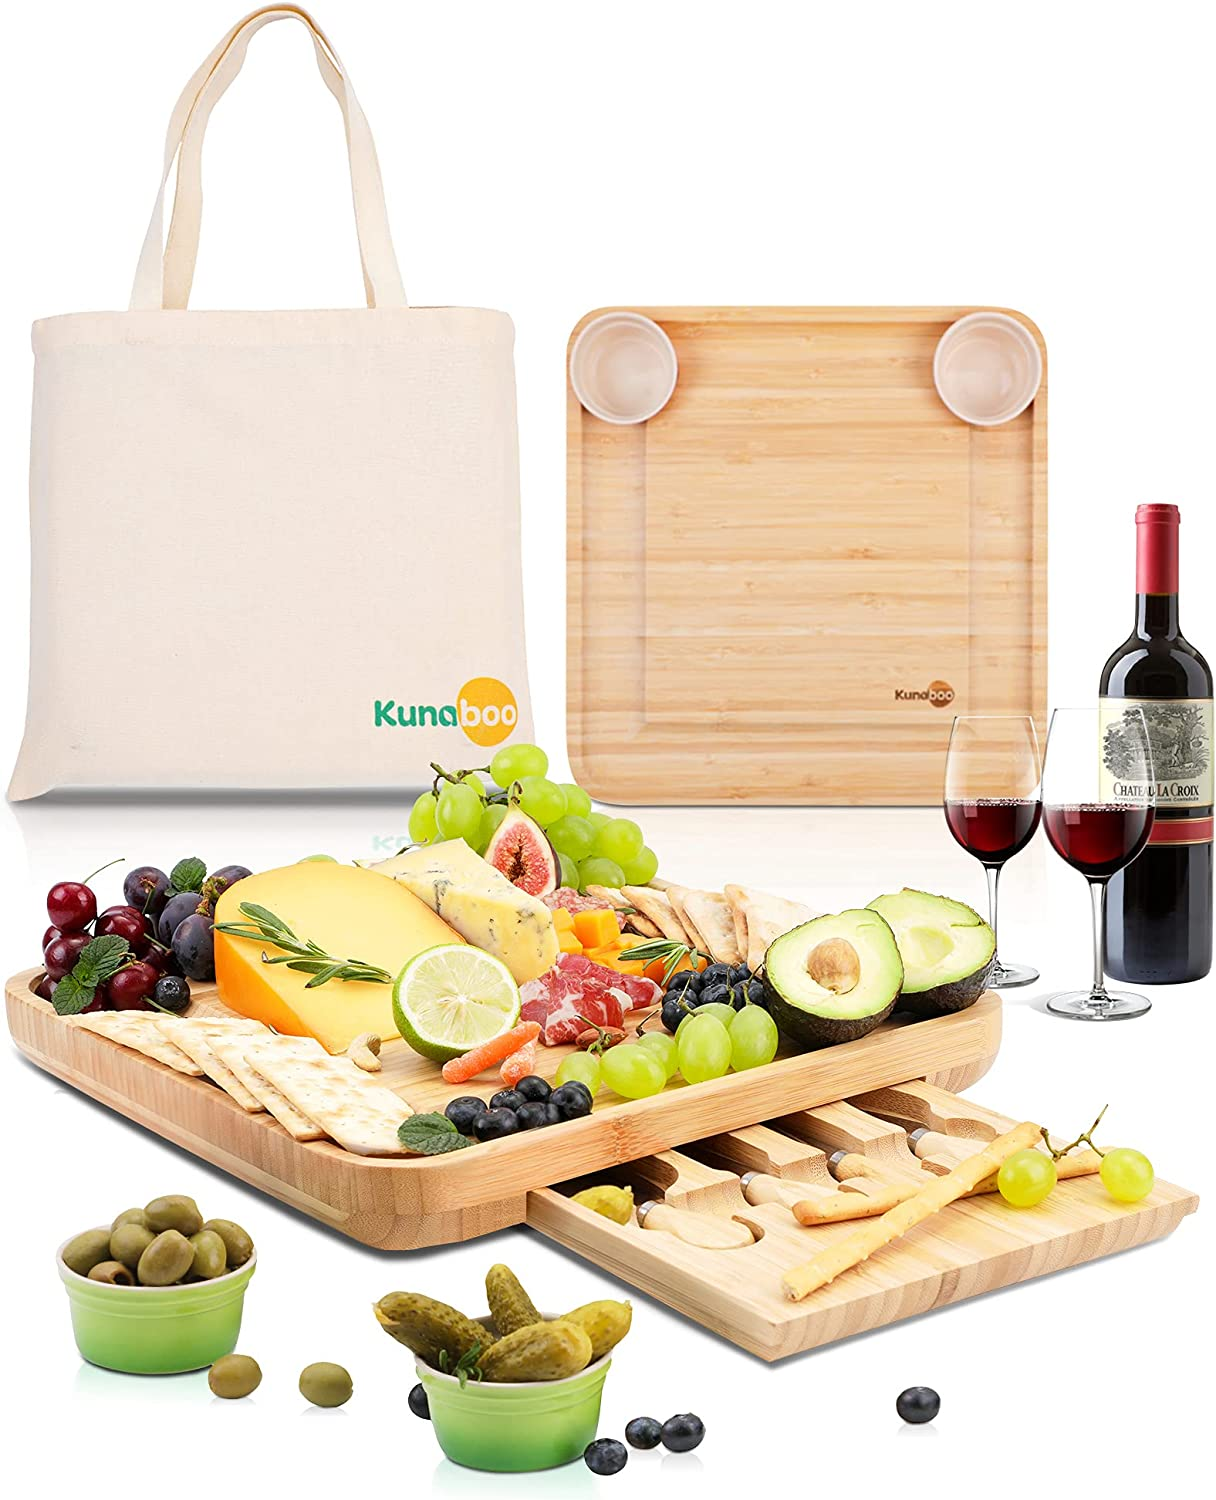 Kunaboo Cheese Board with Avocado Great interest Green bowls Max 63% OFF FSC - certified